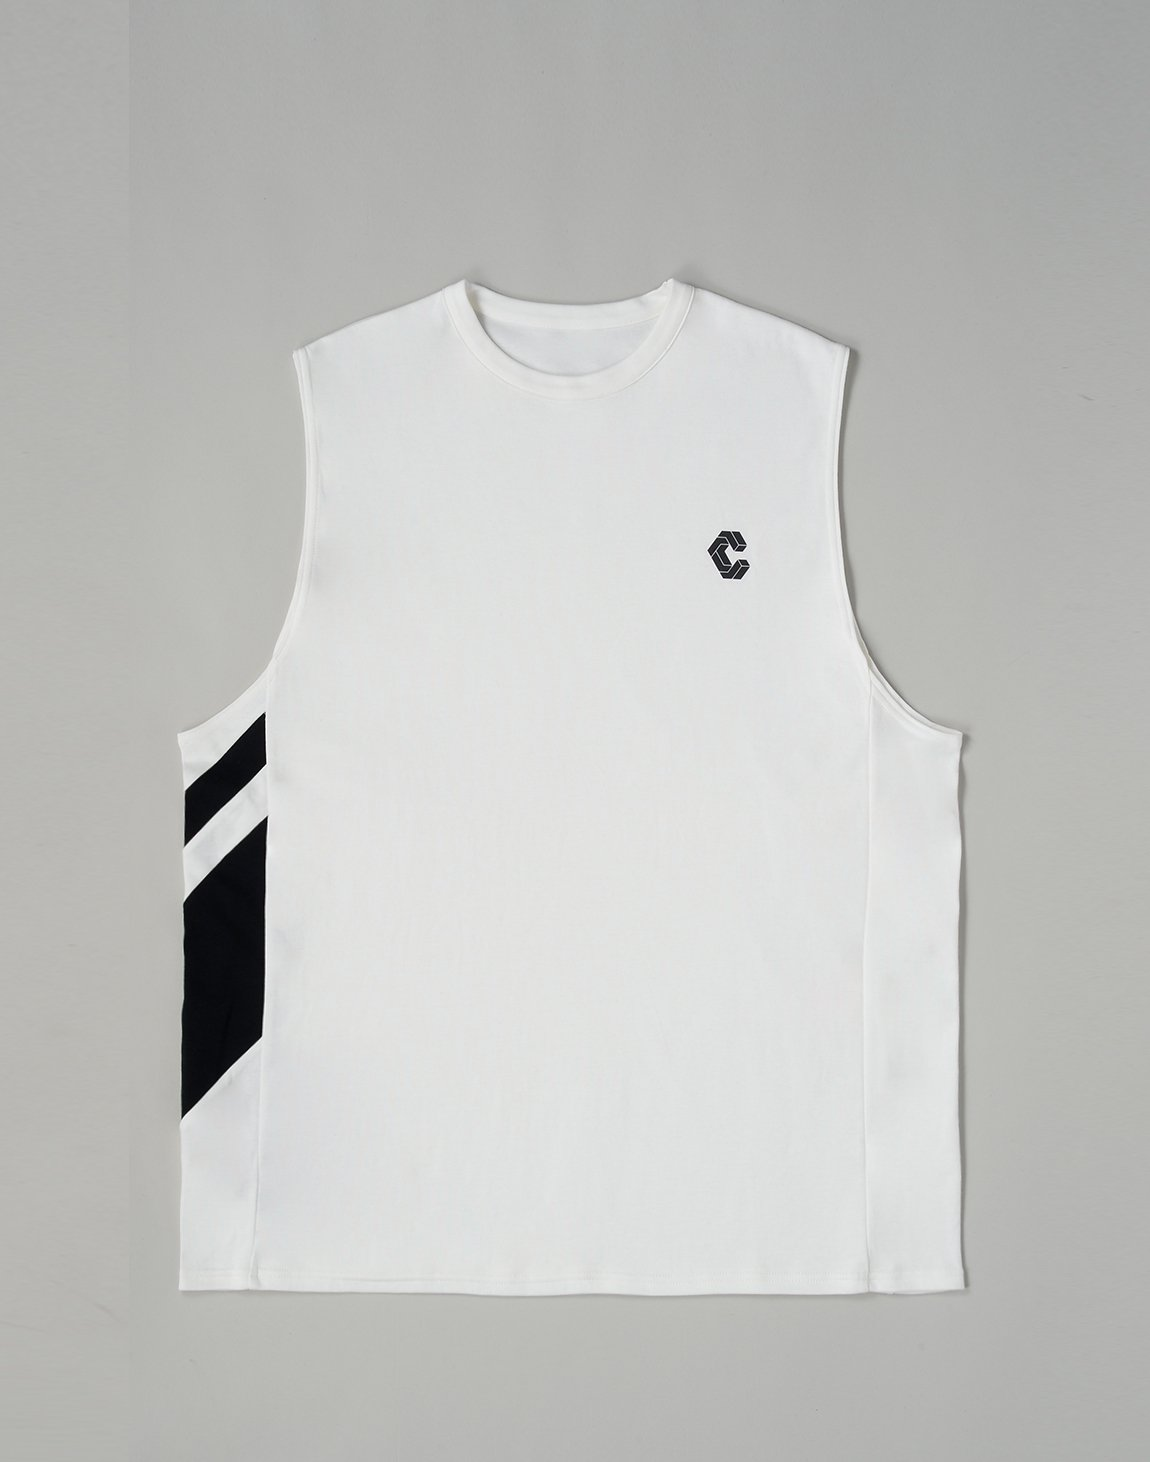 <img class='new_mark_img1' src='https://img.shop-pro.jp/img/new/icons55.gif' style='border:none;display:inline;margin:0px;padding:0px;width:auto;' />CRONOS SLANTED LINE TANKTOP【WHITE】